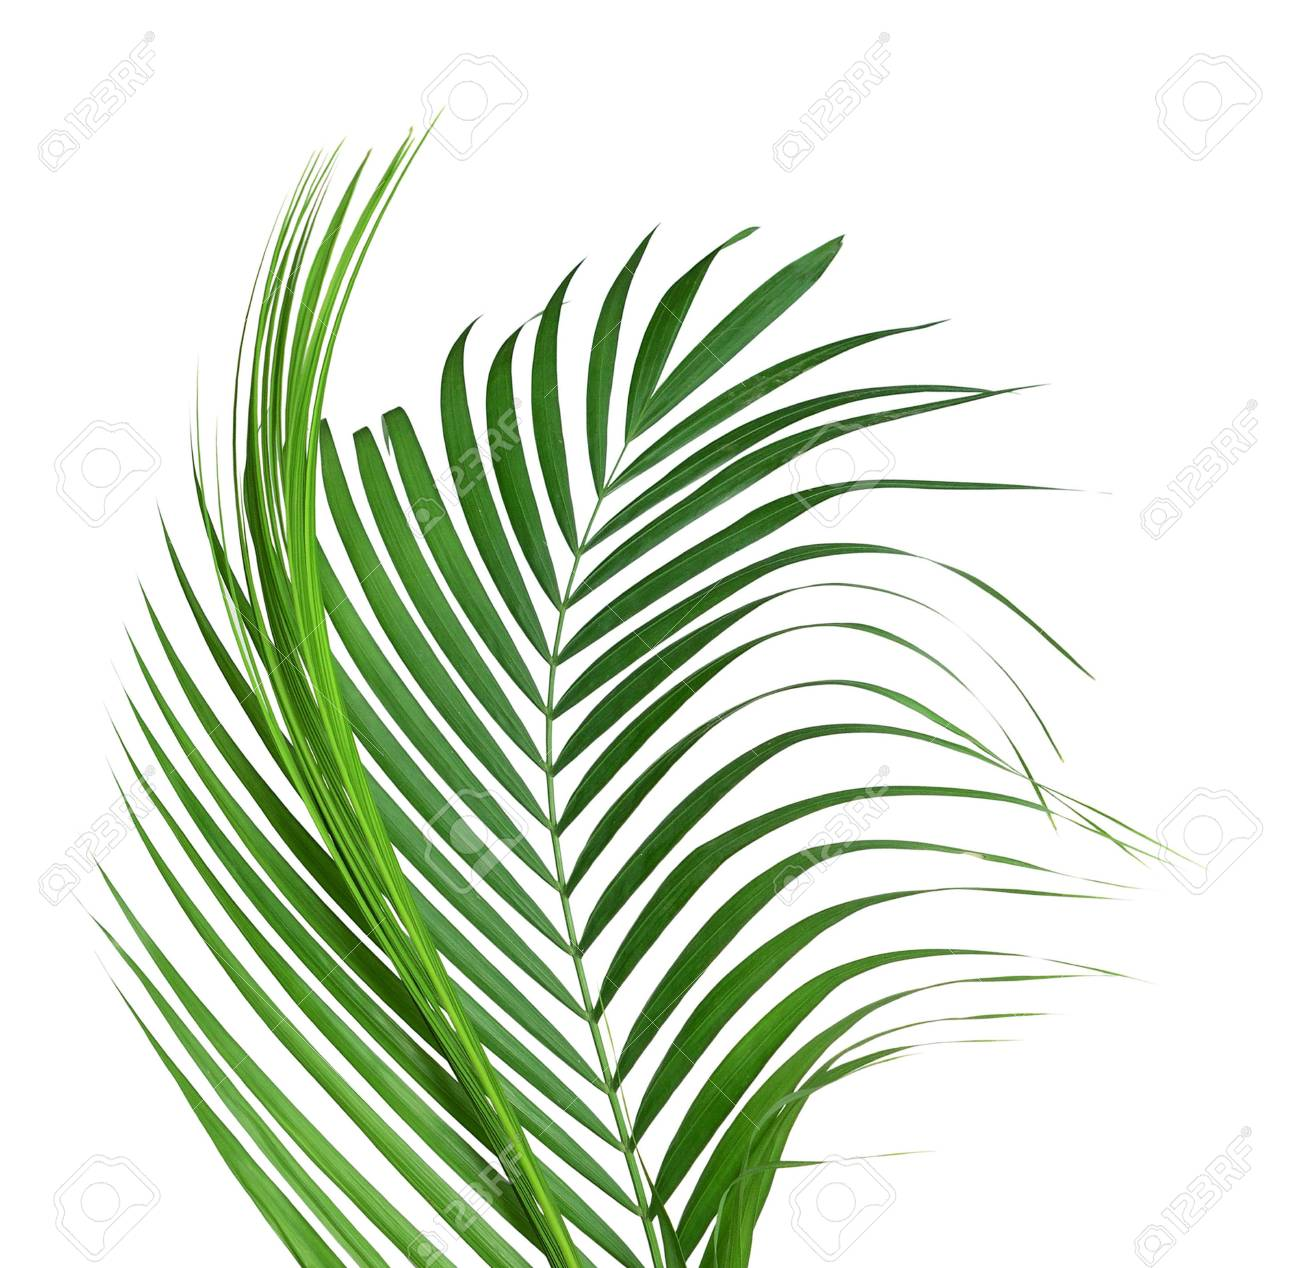 Yellow Palm Leaves Dypsis Lutescens Or Golden Cane Palm Areca Stock Photo Picture And Royalty Free Image Image 122708672